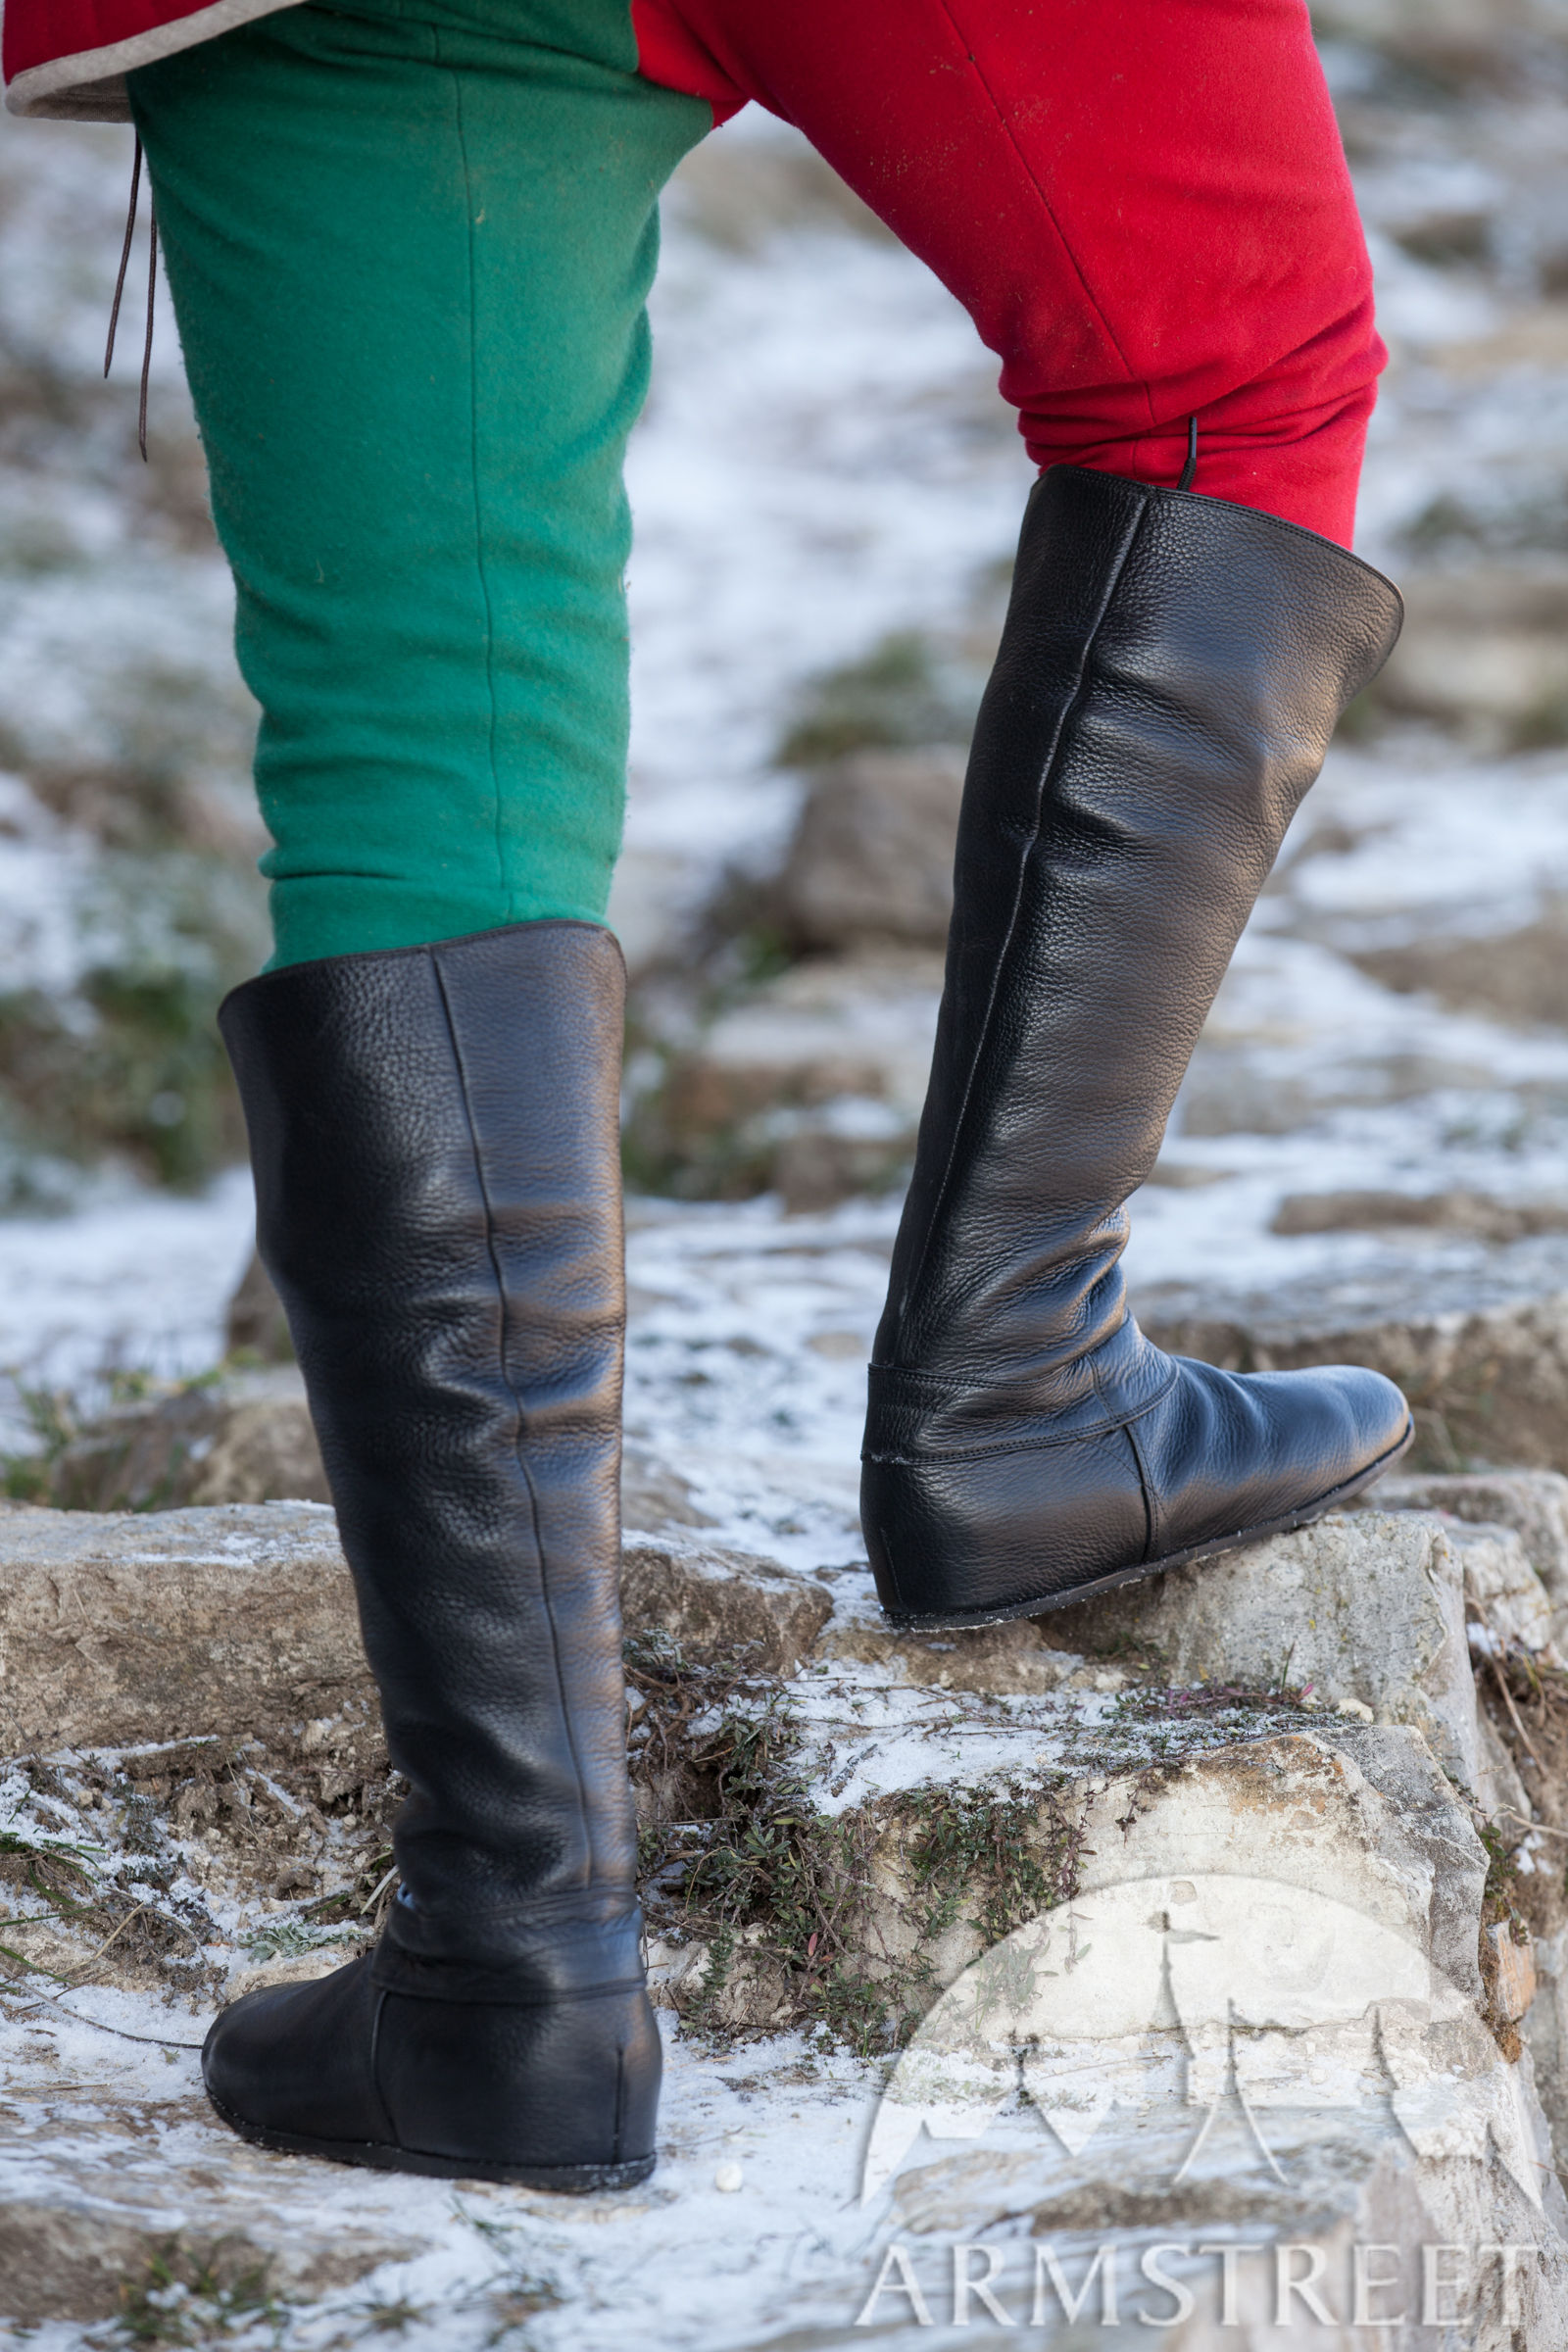 Medieval Fantasy High Boots Quot Forest Quot For Sca And